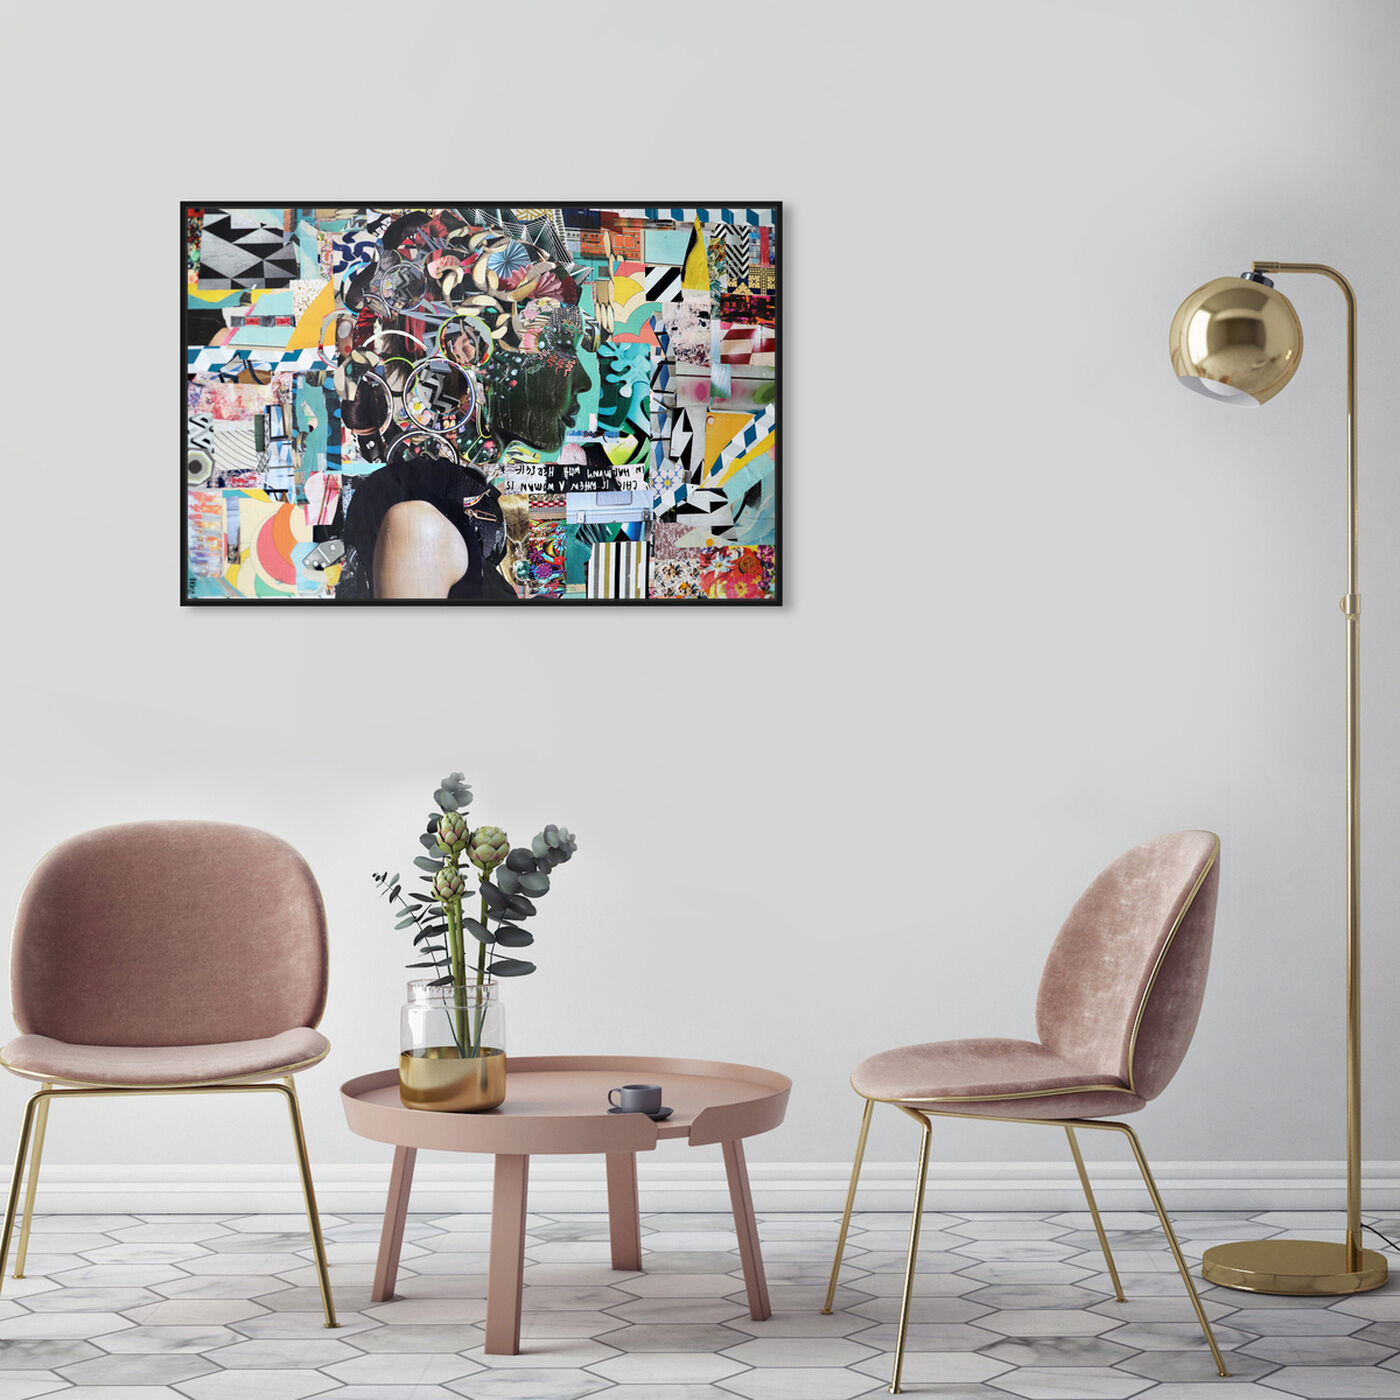 Hanging view of Katy Hirschfeld - Elegance in Stride featuring fashion and glam and portraits art.